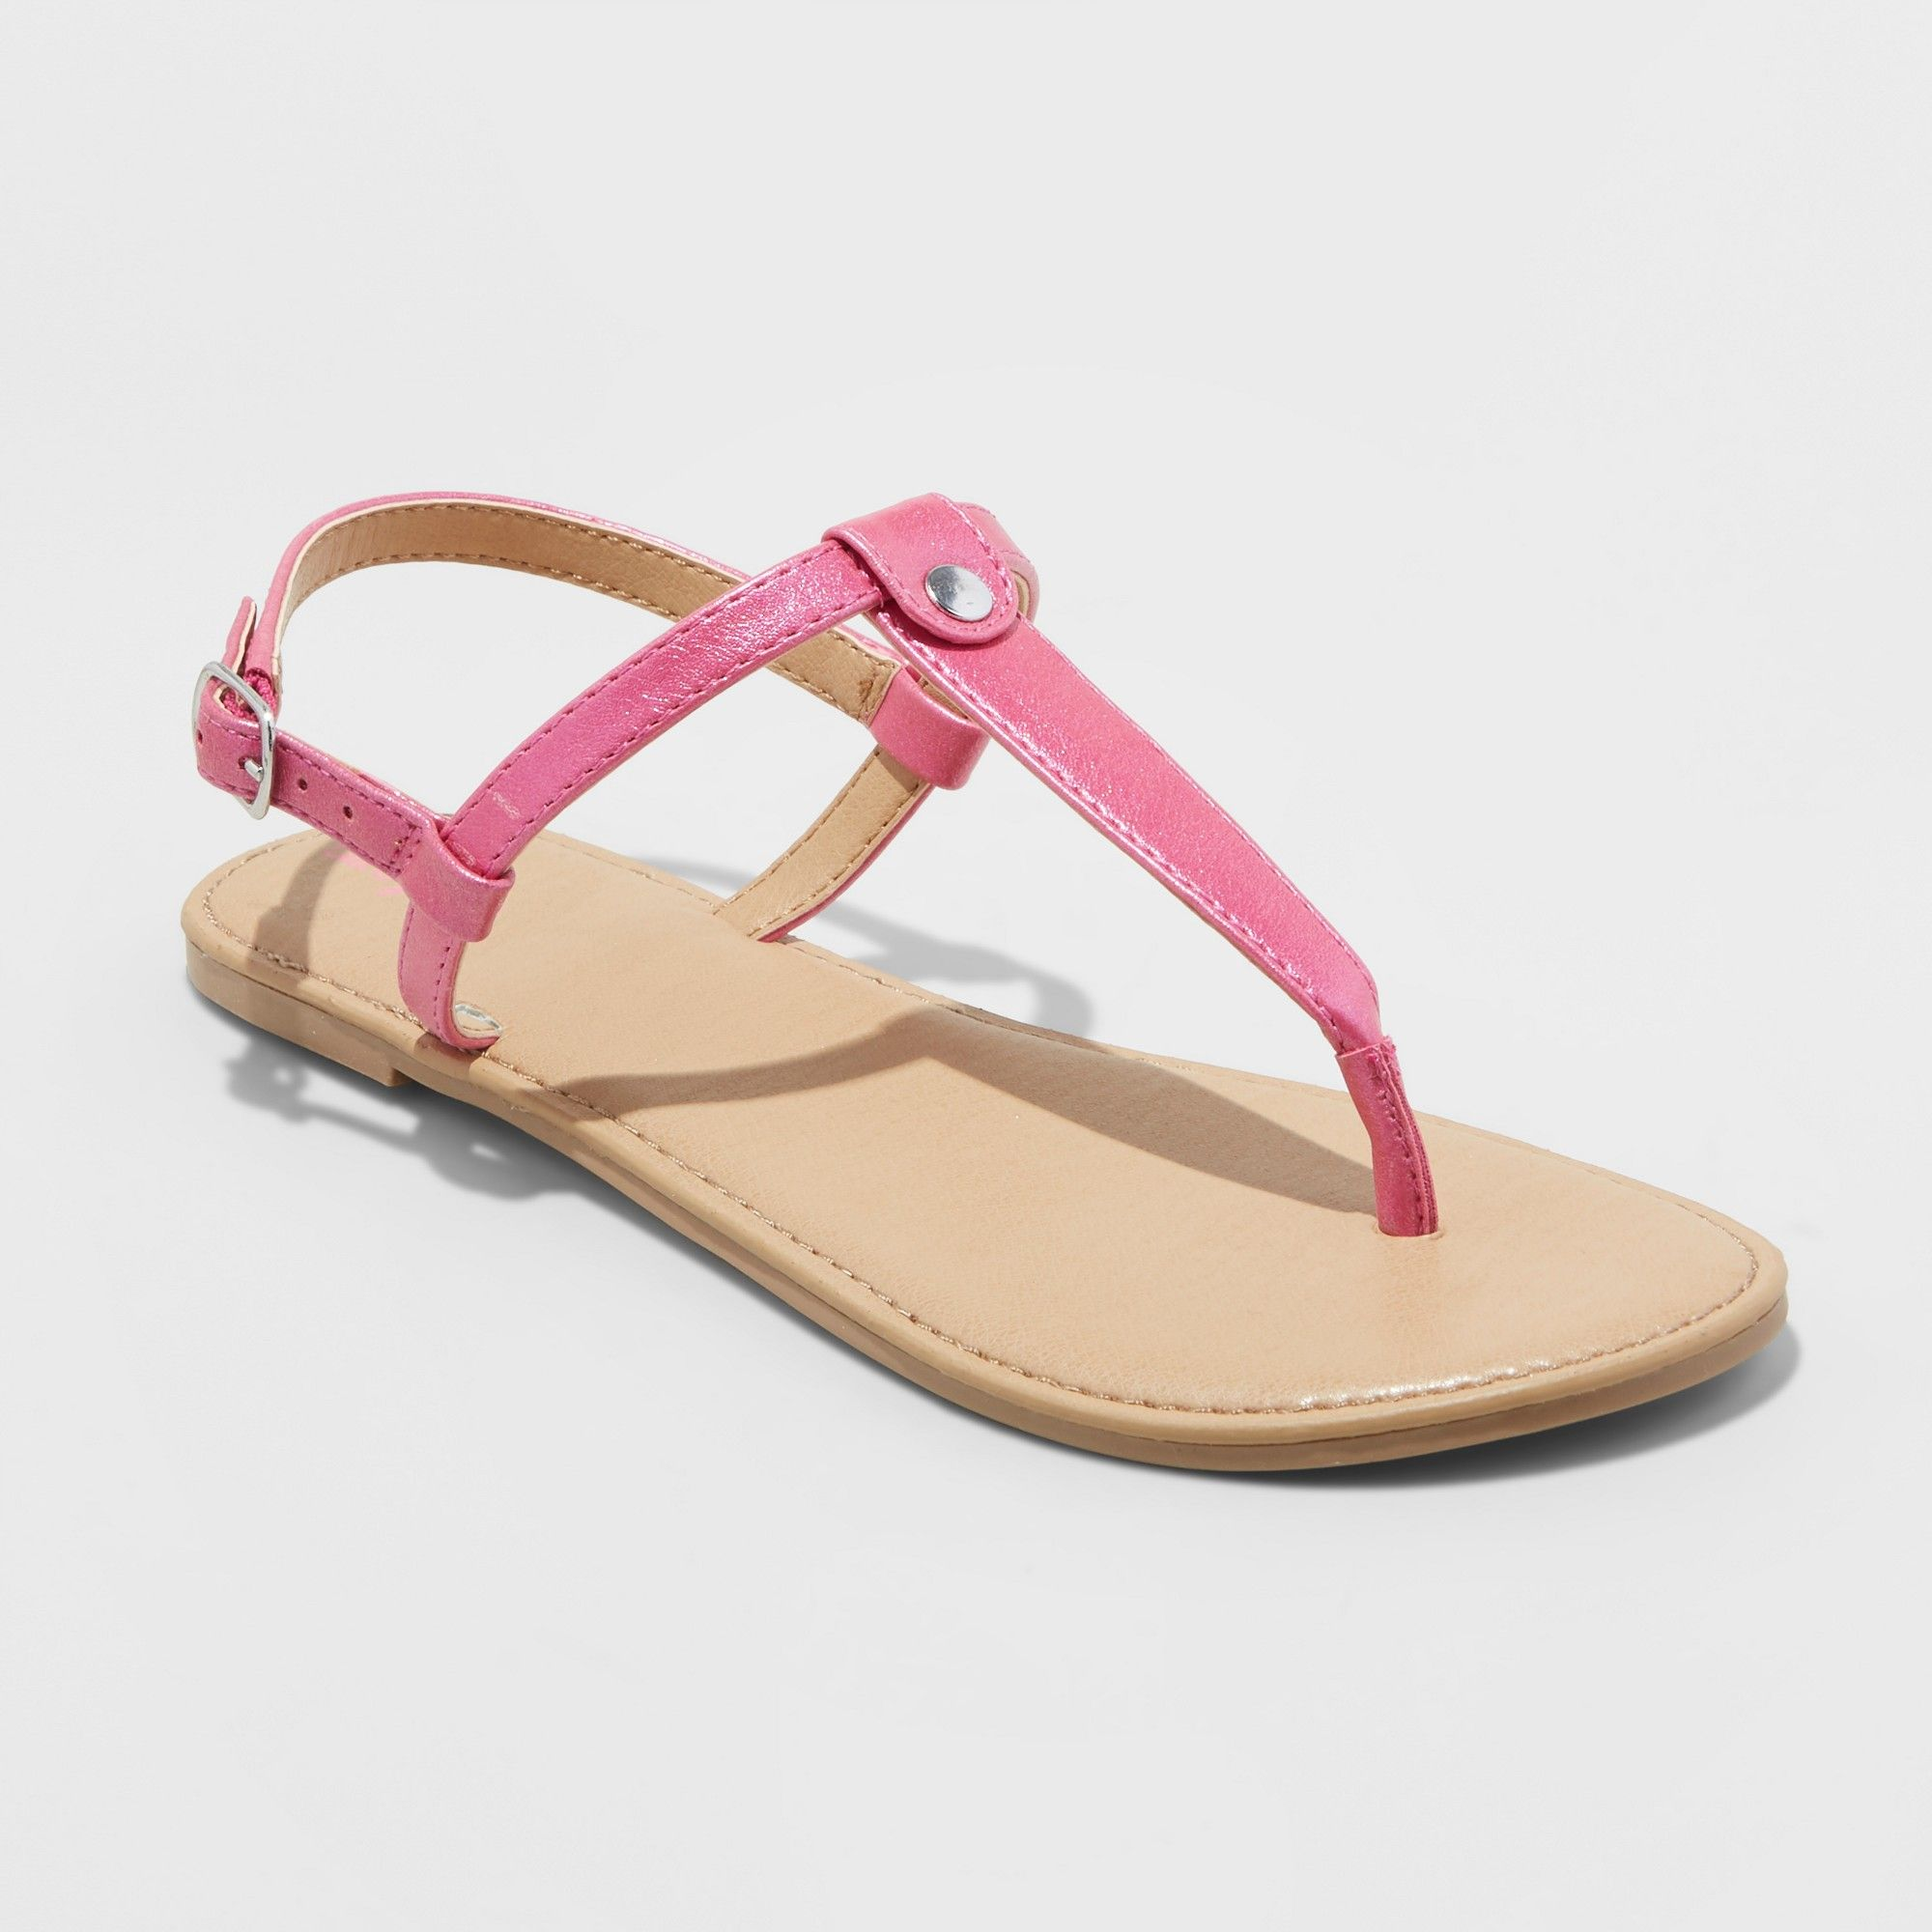 c241c97cff6d Girls  Odette Thong Sandals - Cat   Jack Pink 13